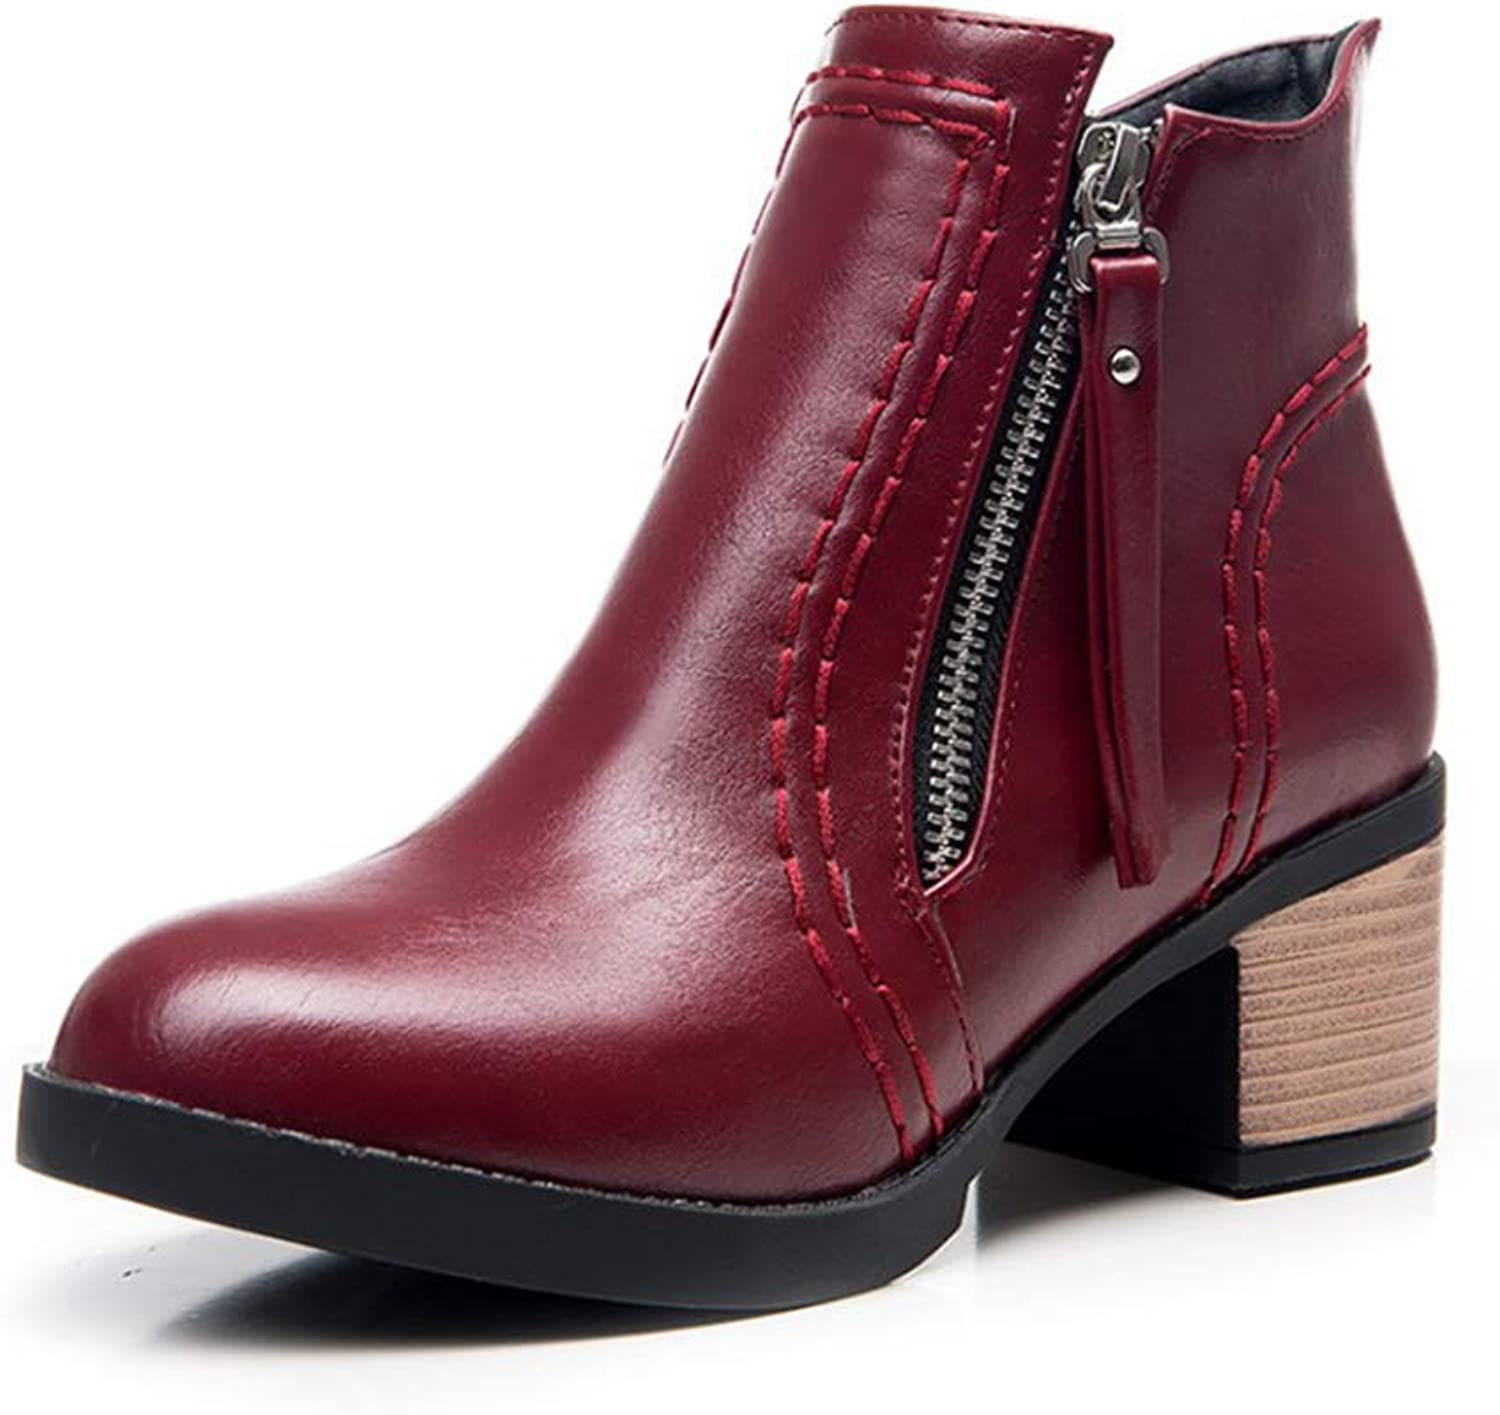 Women's Retro Ankle Boots,Round Toe Block Chunky Heel Martin Booties,Double Zipper Knight Boots